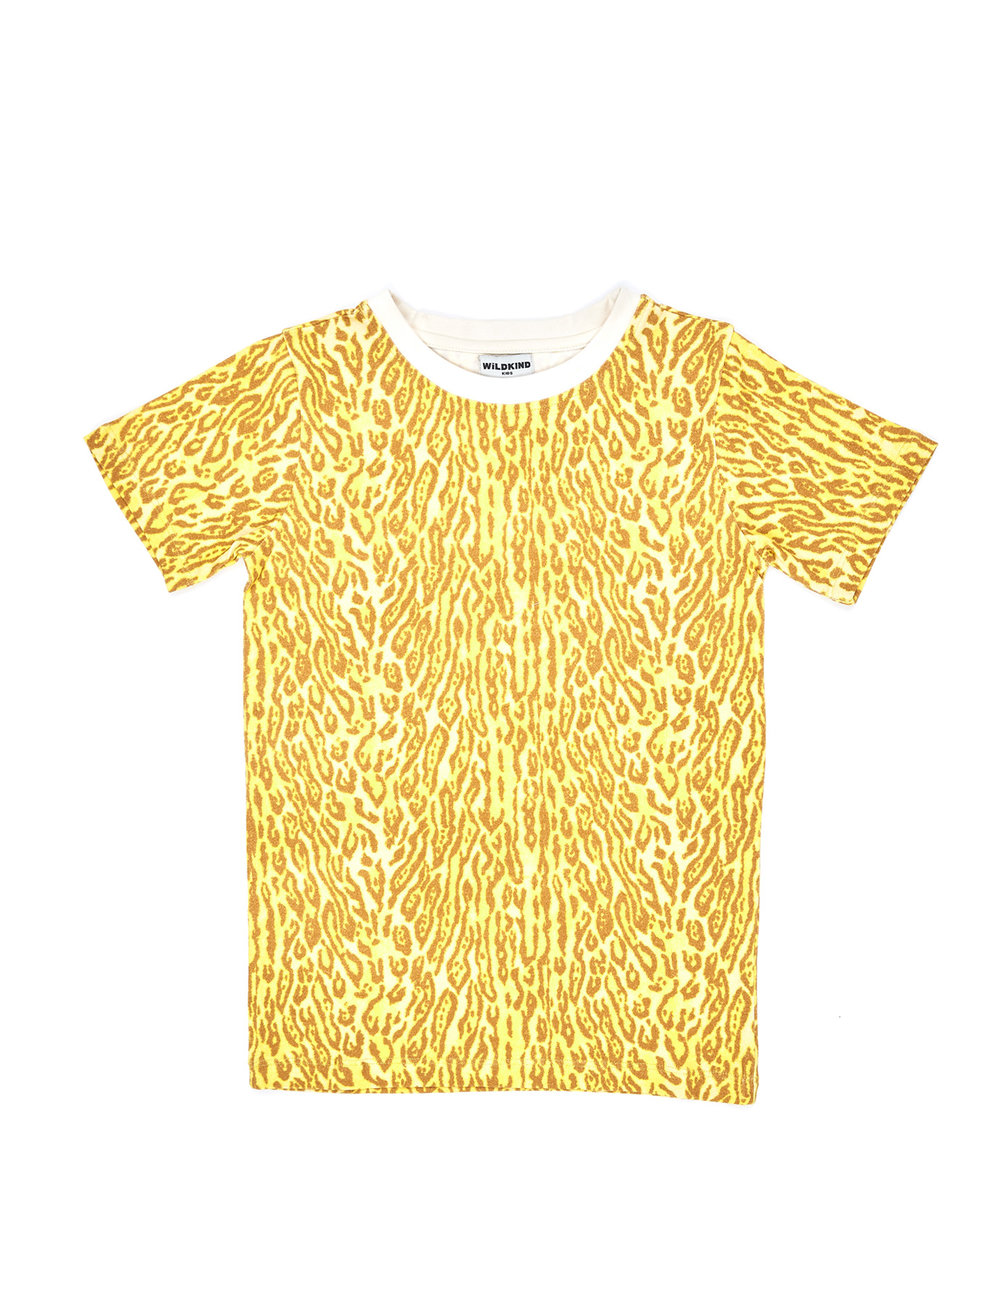 Lance_long_tee_leopard_yellow_44€.jpg